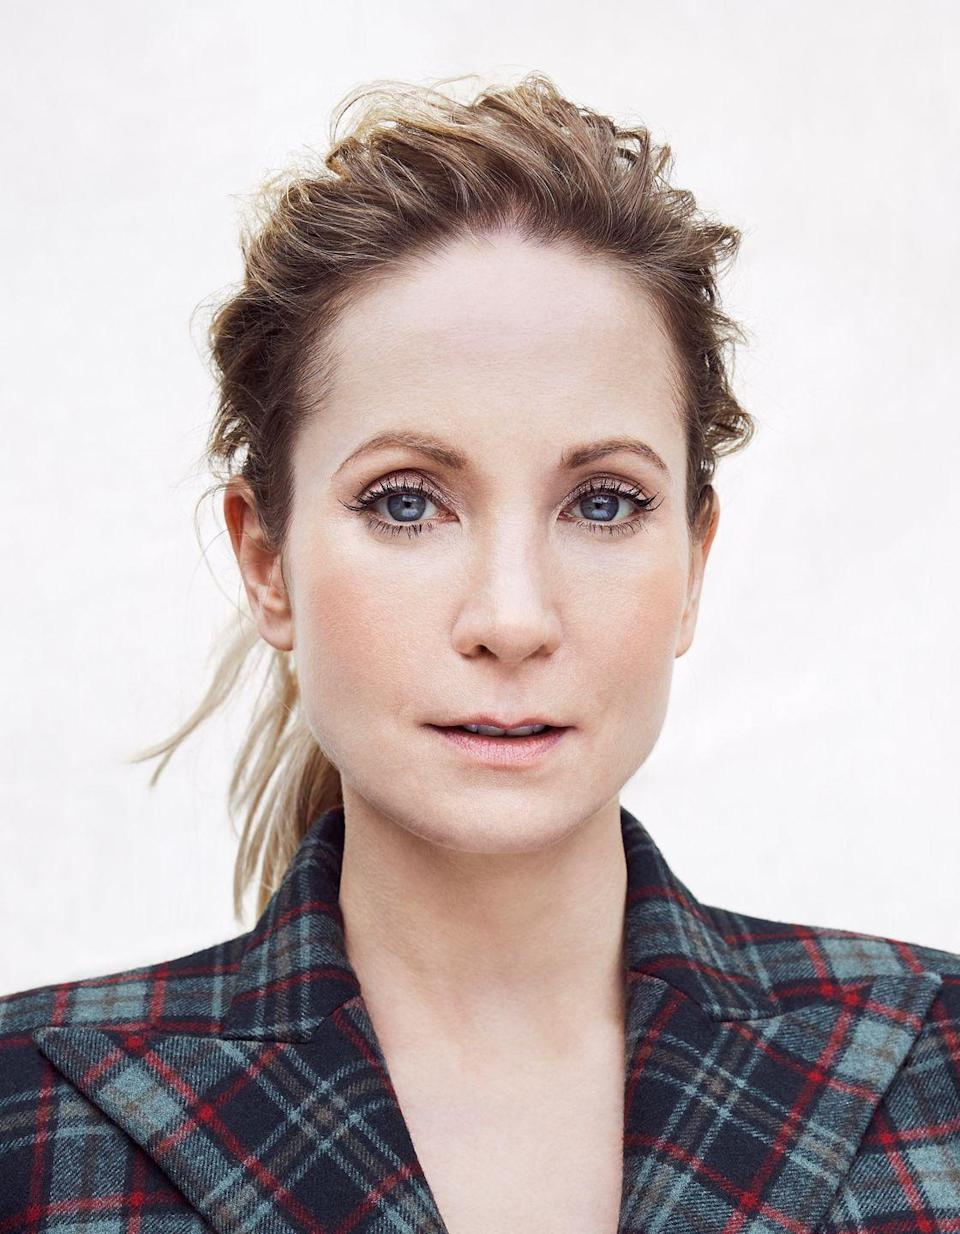 <p>Joanne Froggatt, of Downton Abbey fame, takes on the role of Angela Black - 'a suburban housewife whose seemingly perfect life isn't all it appears to be'.</p><p><strong>Release date: TBA</strong></p>